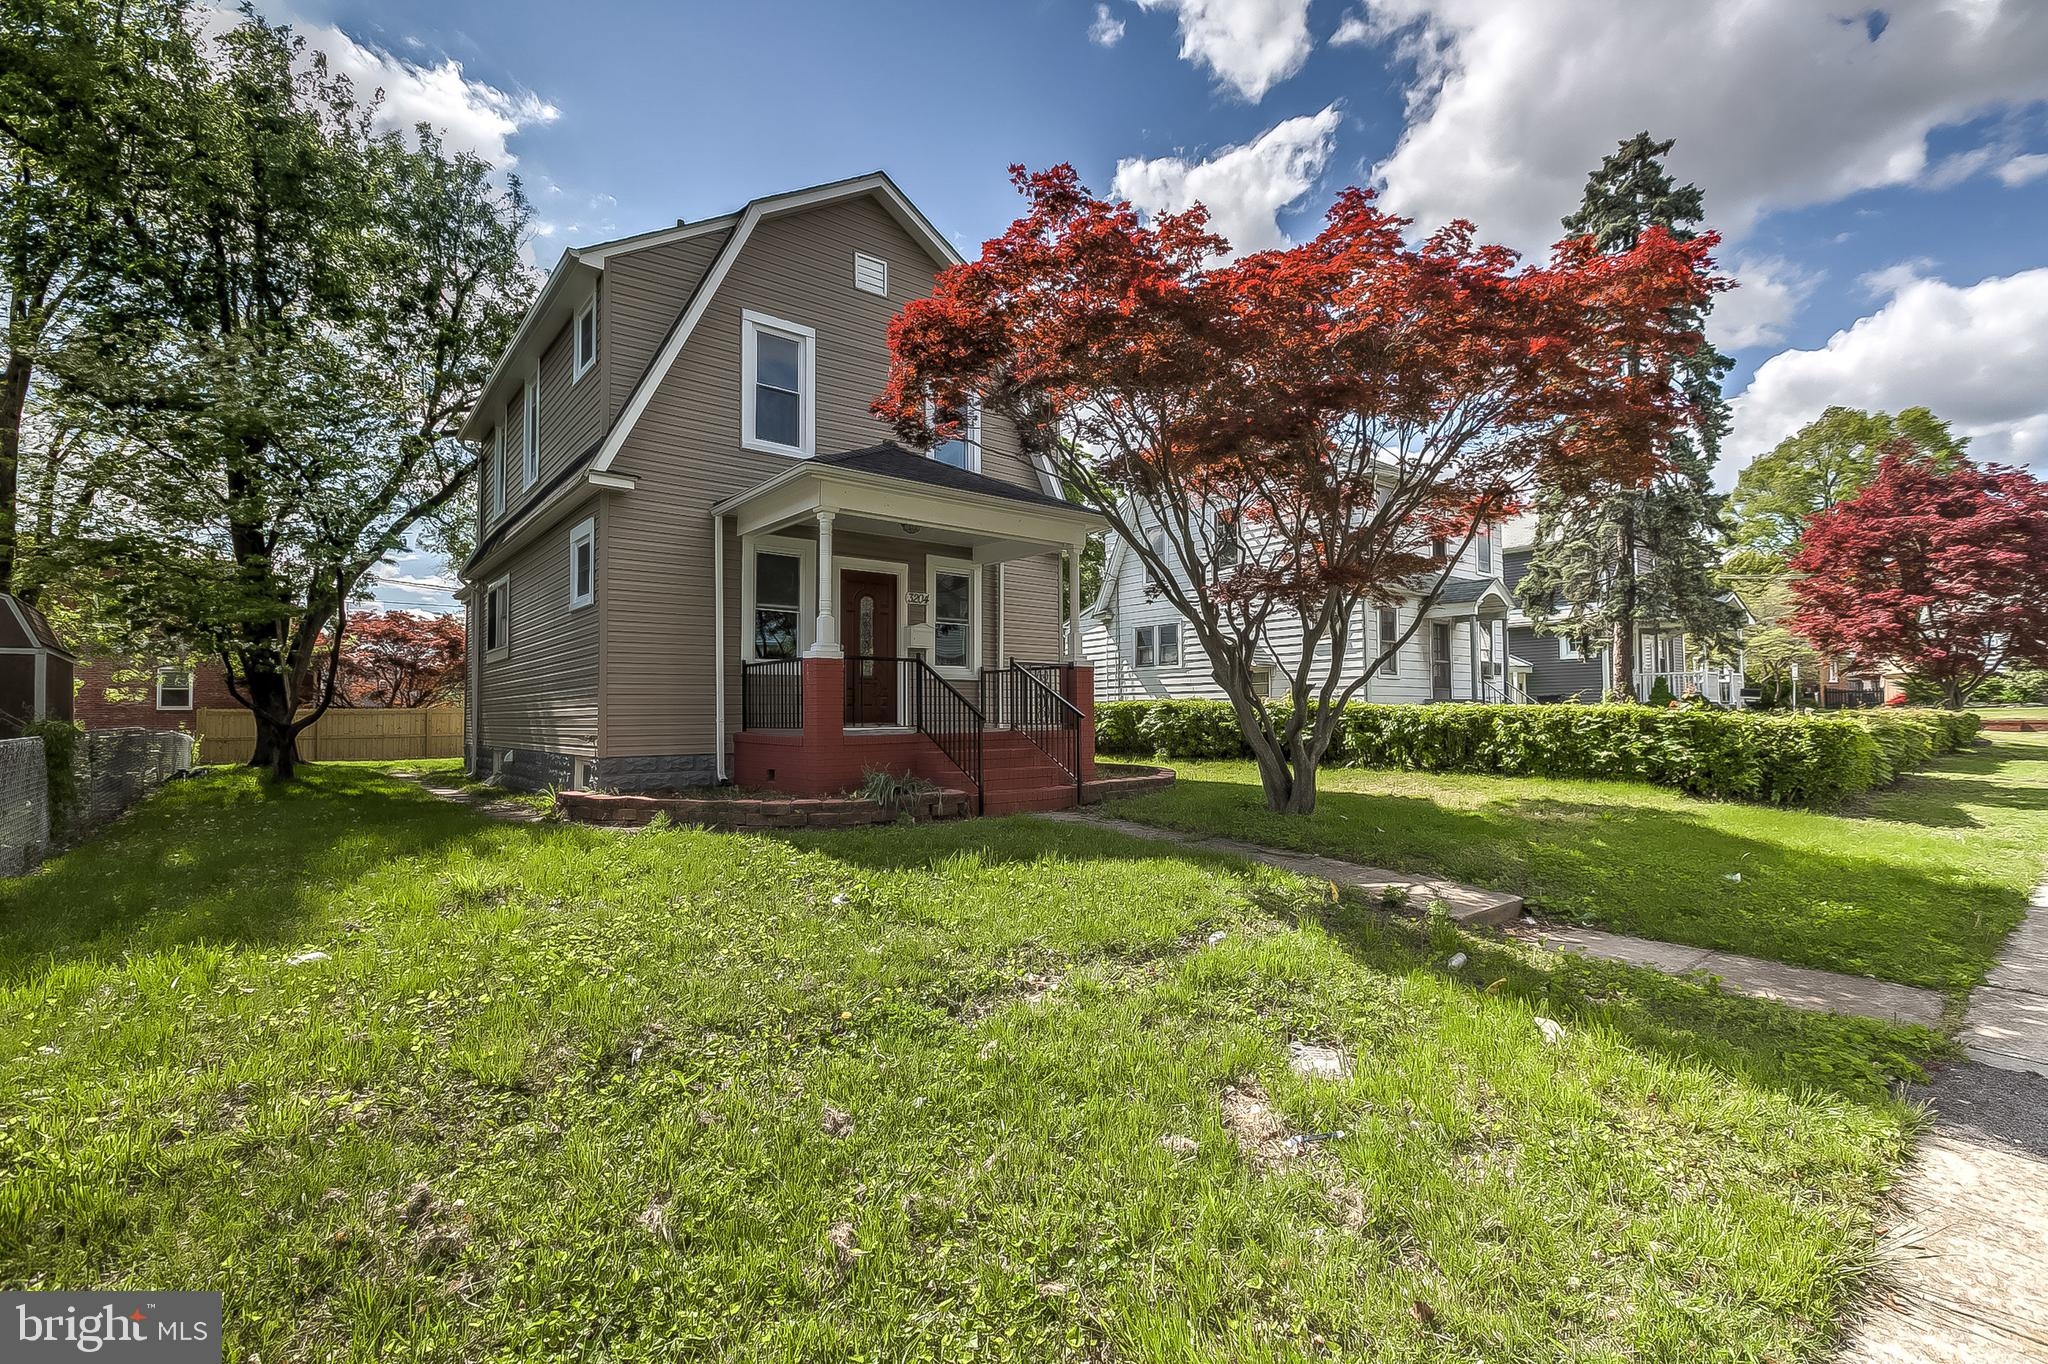 FULLY RENOVATED 3 BEDROOM + 2 BATHROOM HOME WITH YARD AND PARKING: Beautifully renovated home conven